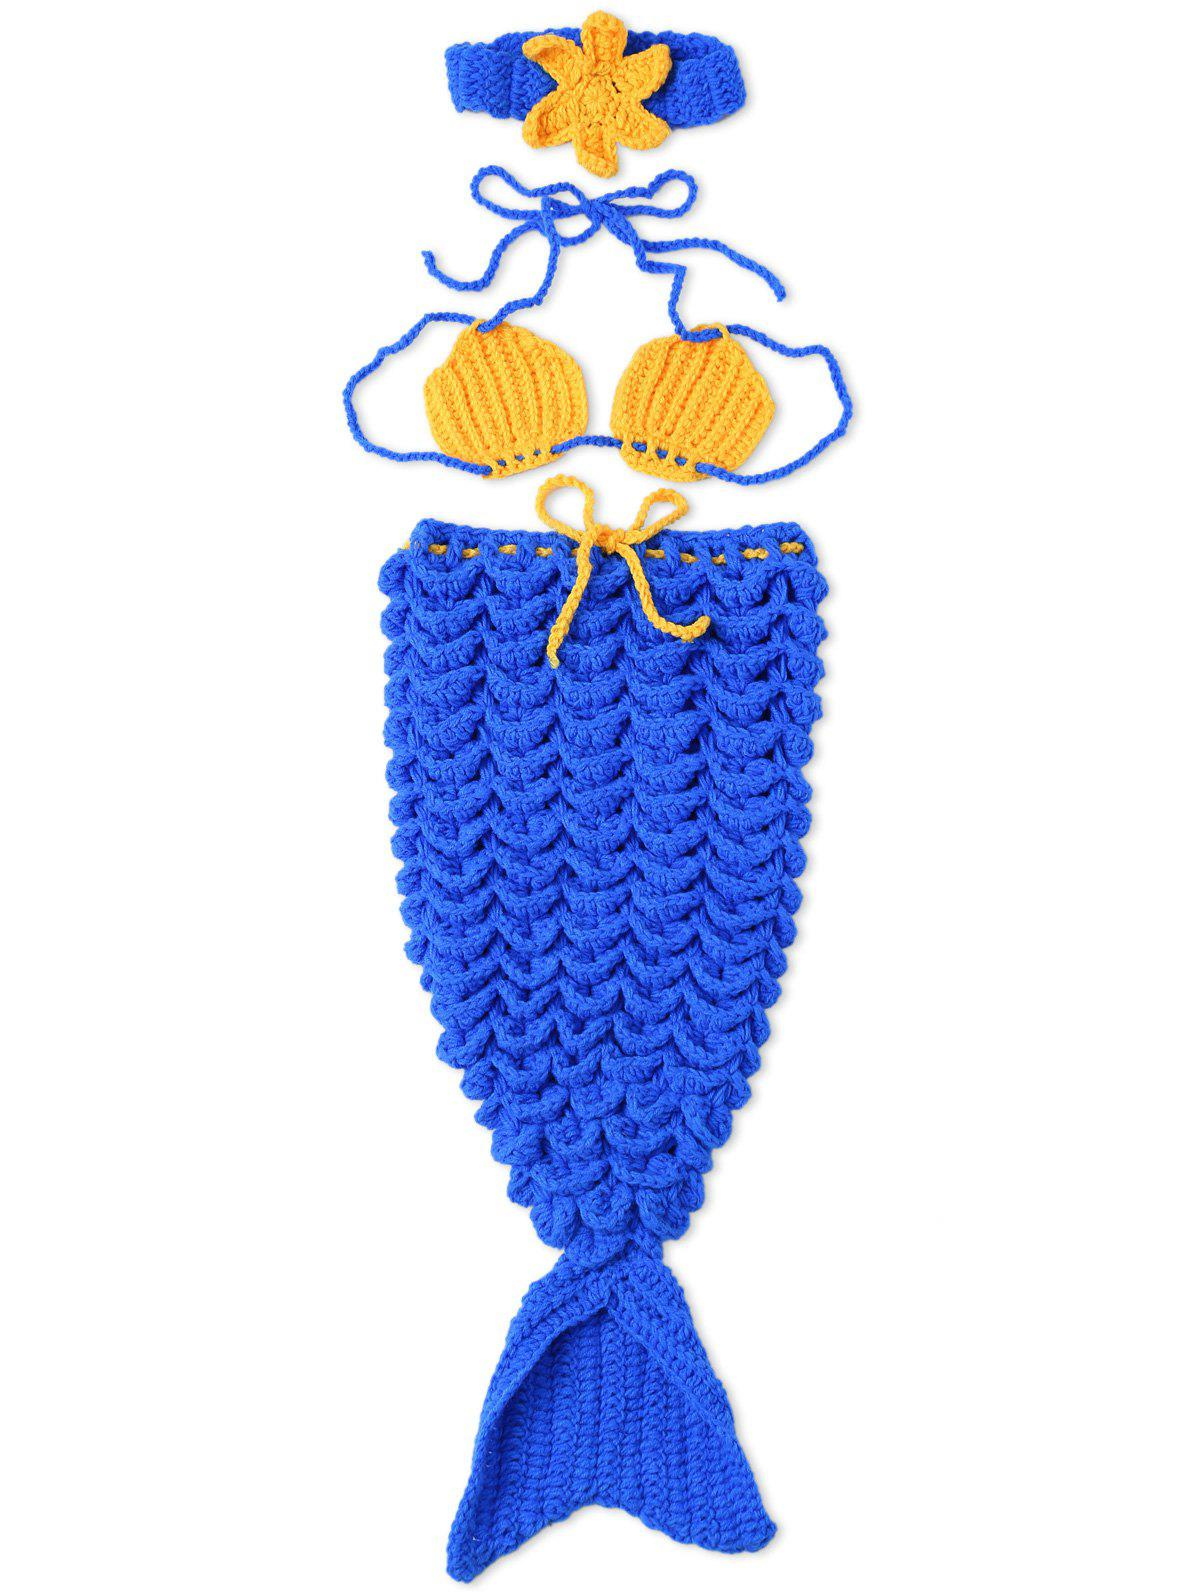 Newborn Photography Prop Crochet Mermaid Costume Set free shipping one pair viborg krell schuko version 24k gold plated audio power plug for audio power wire